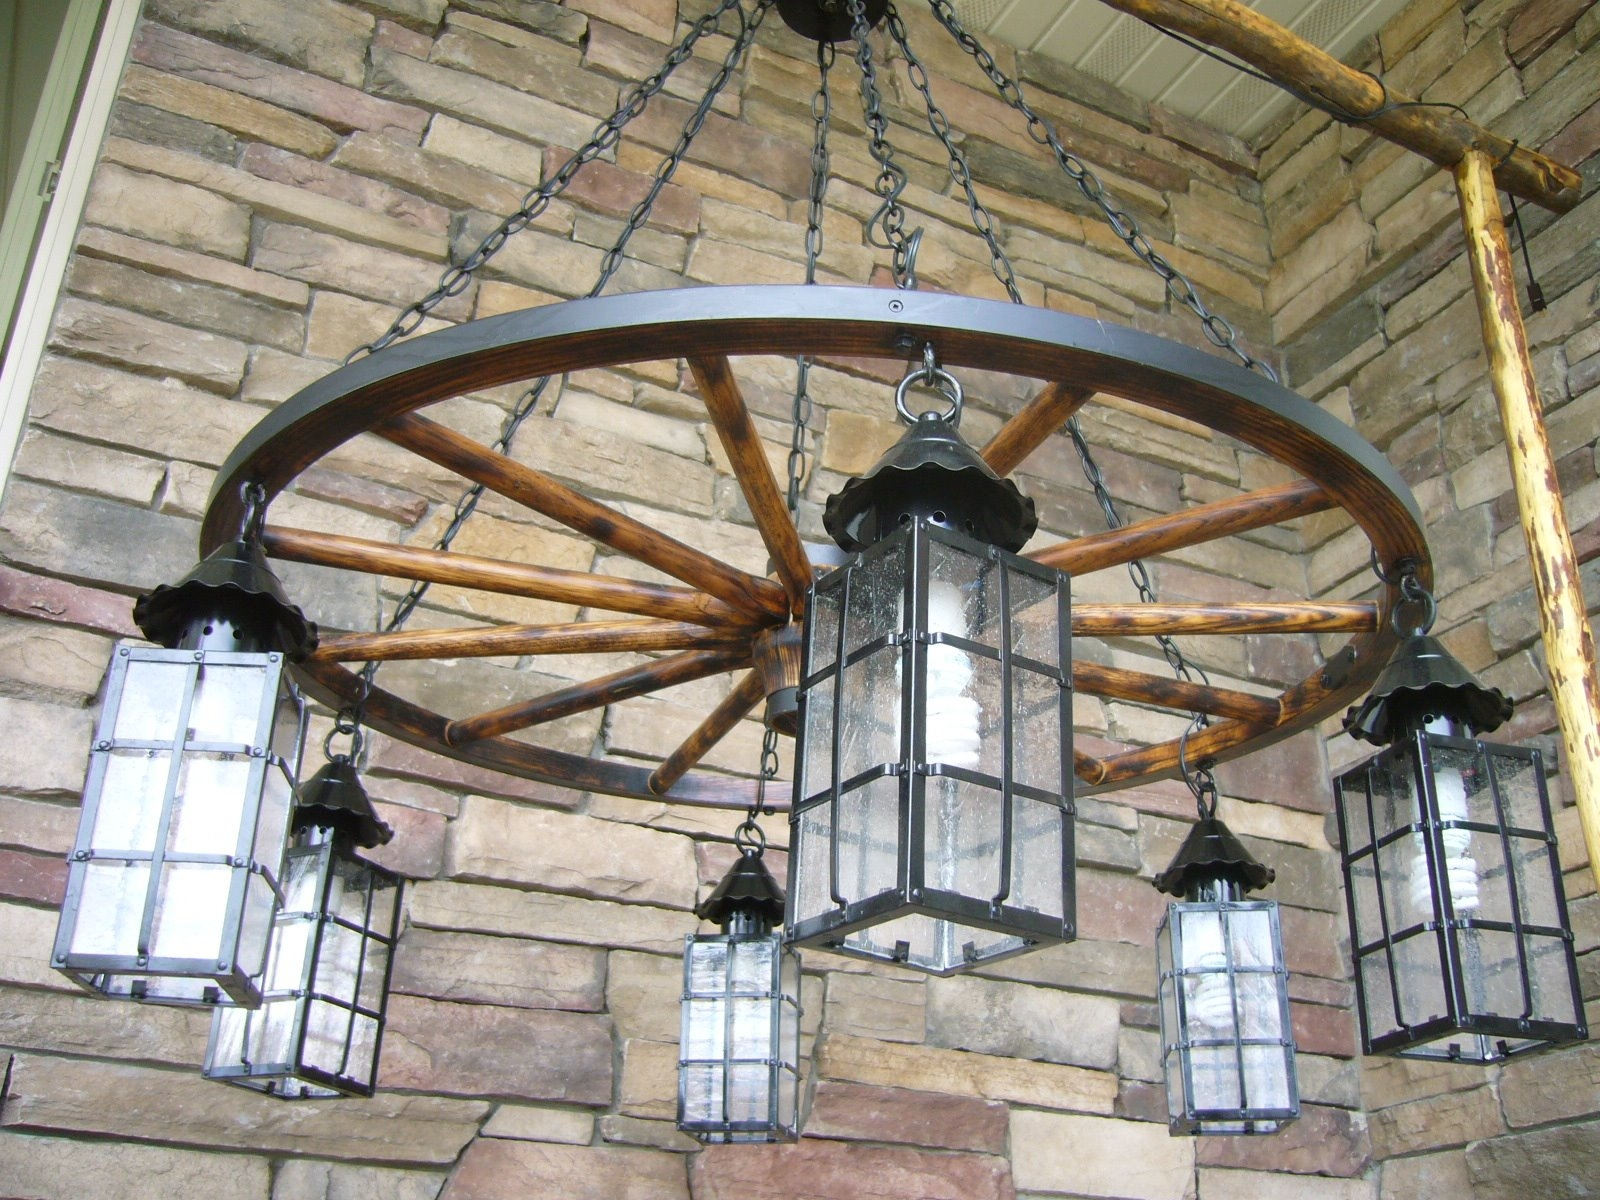 Rodeo Tales & Gypsy Trails: Brockman's WESTERN LIGHTING